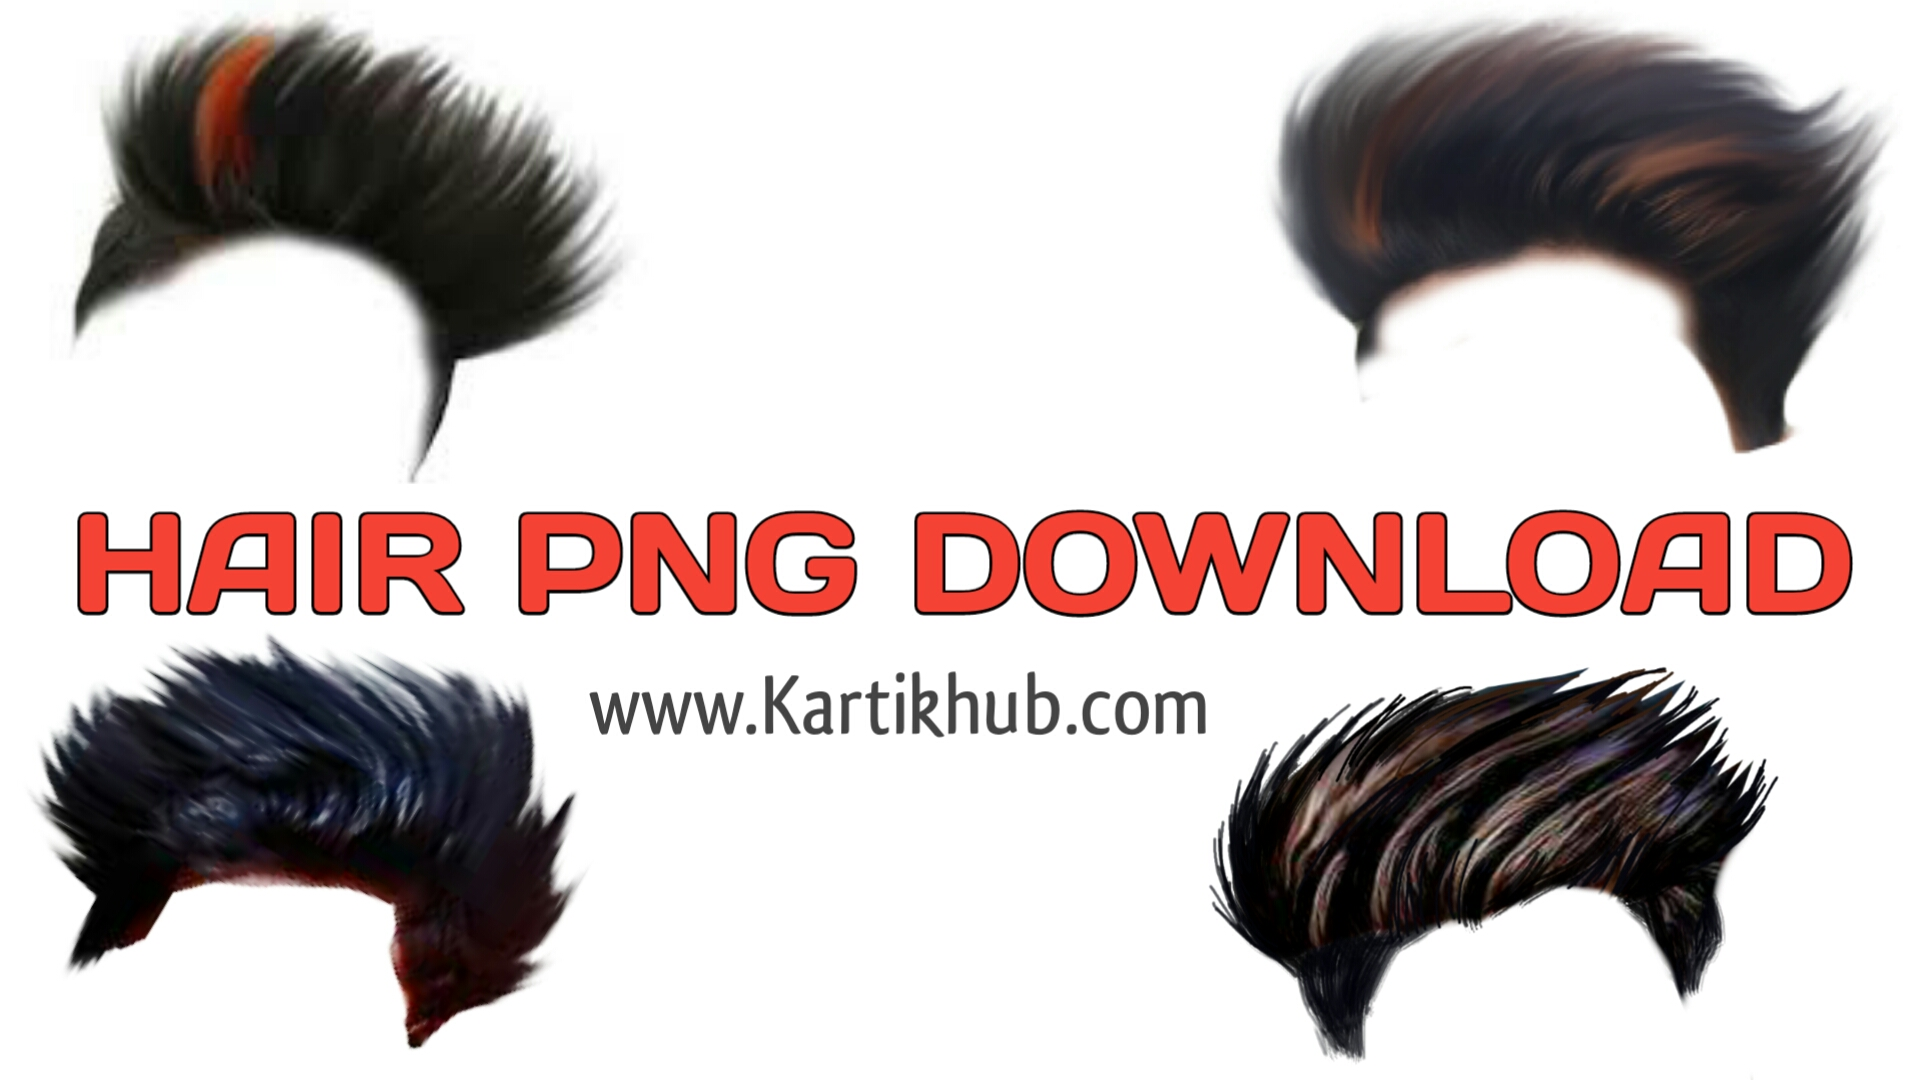 Cb edit hair png download 2019, hair png hd for picsart.